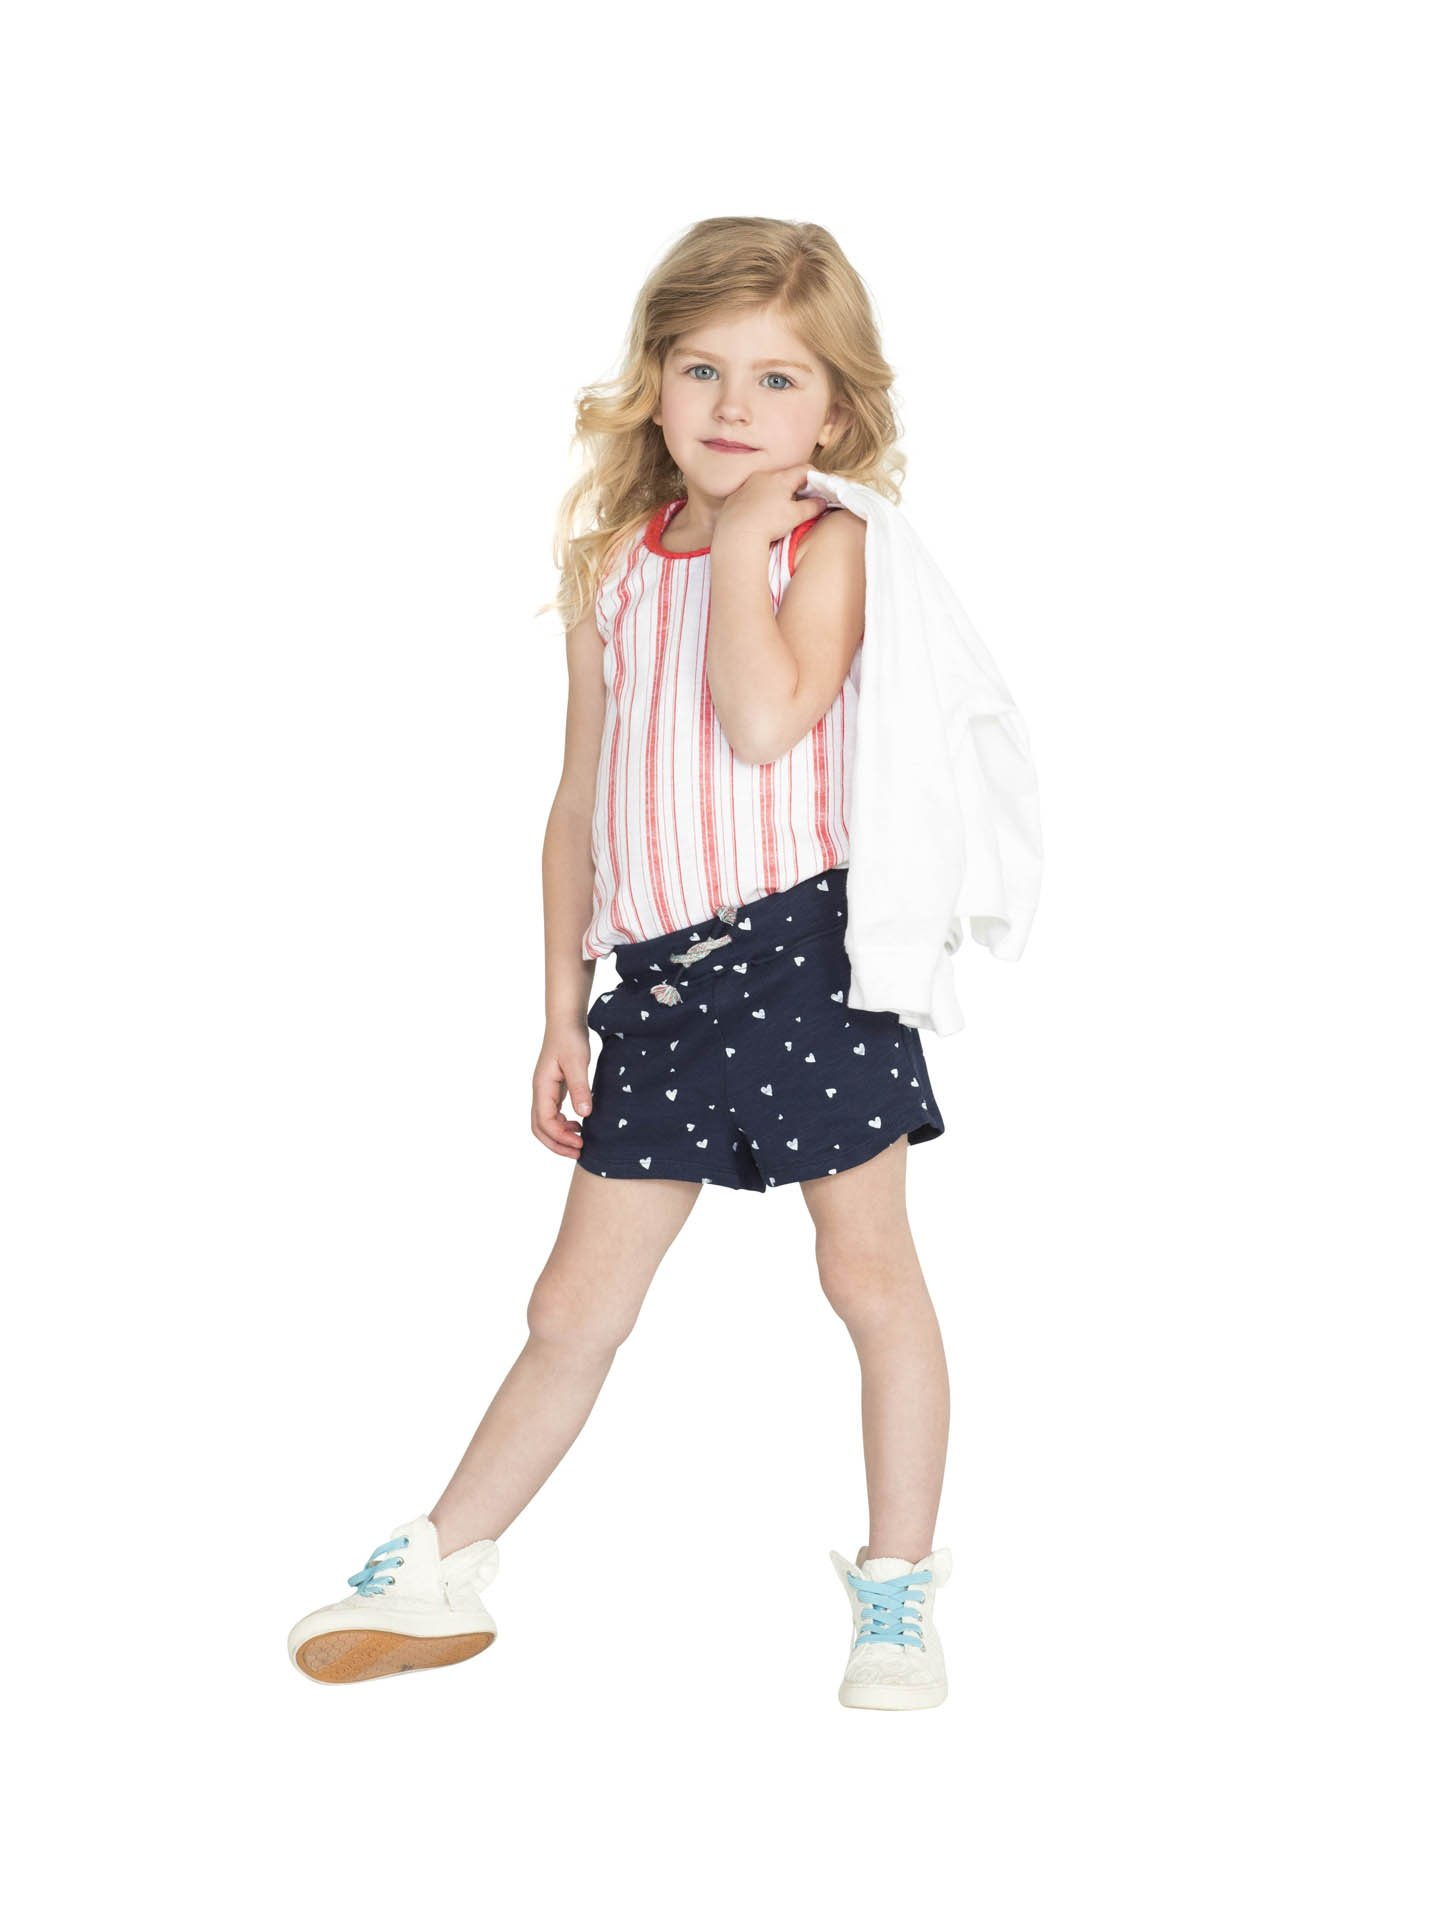 Colored Organics Girls Organic Nika Sport Shorts - Navy/White Heart Print - 2T by Colored Organics (Image #2)